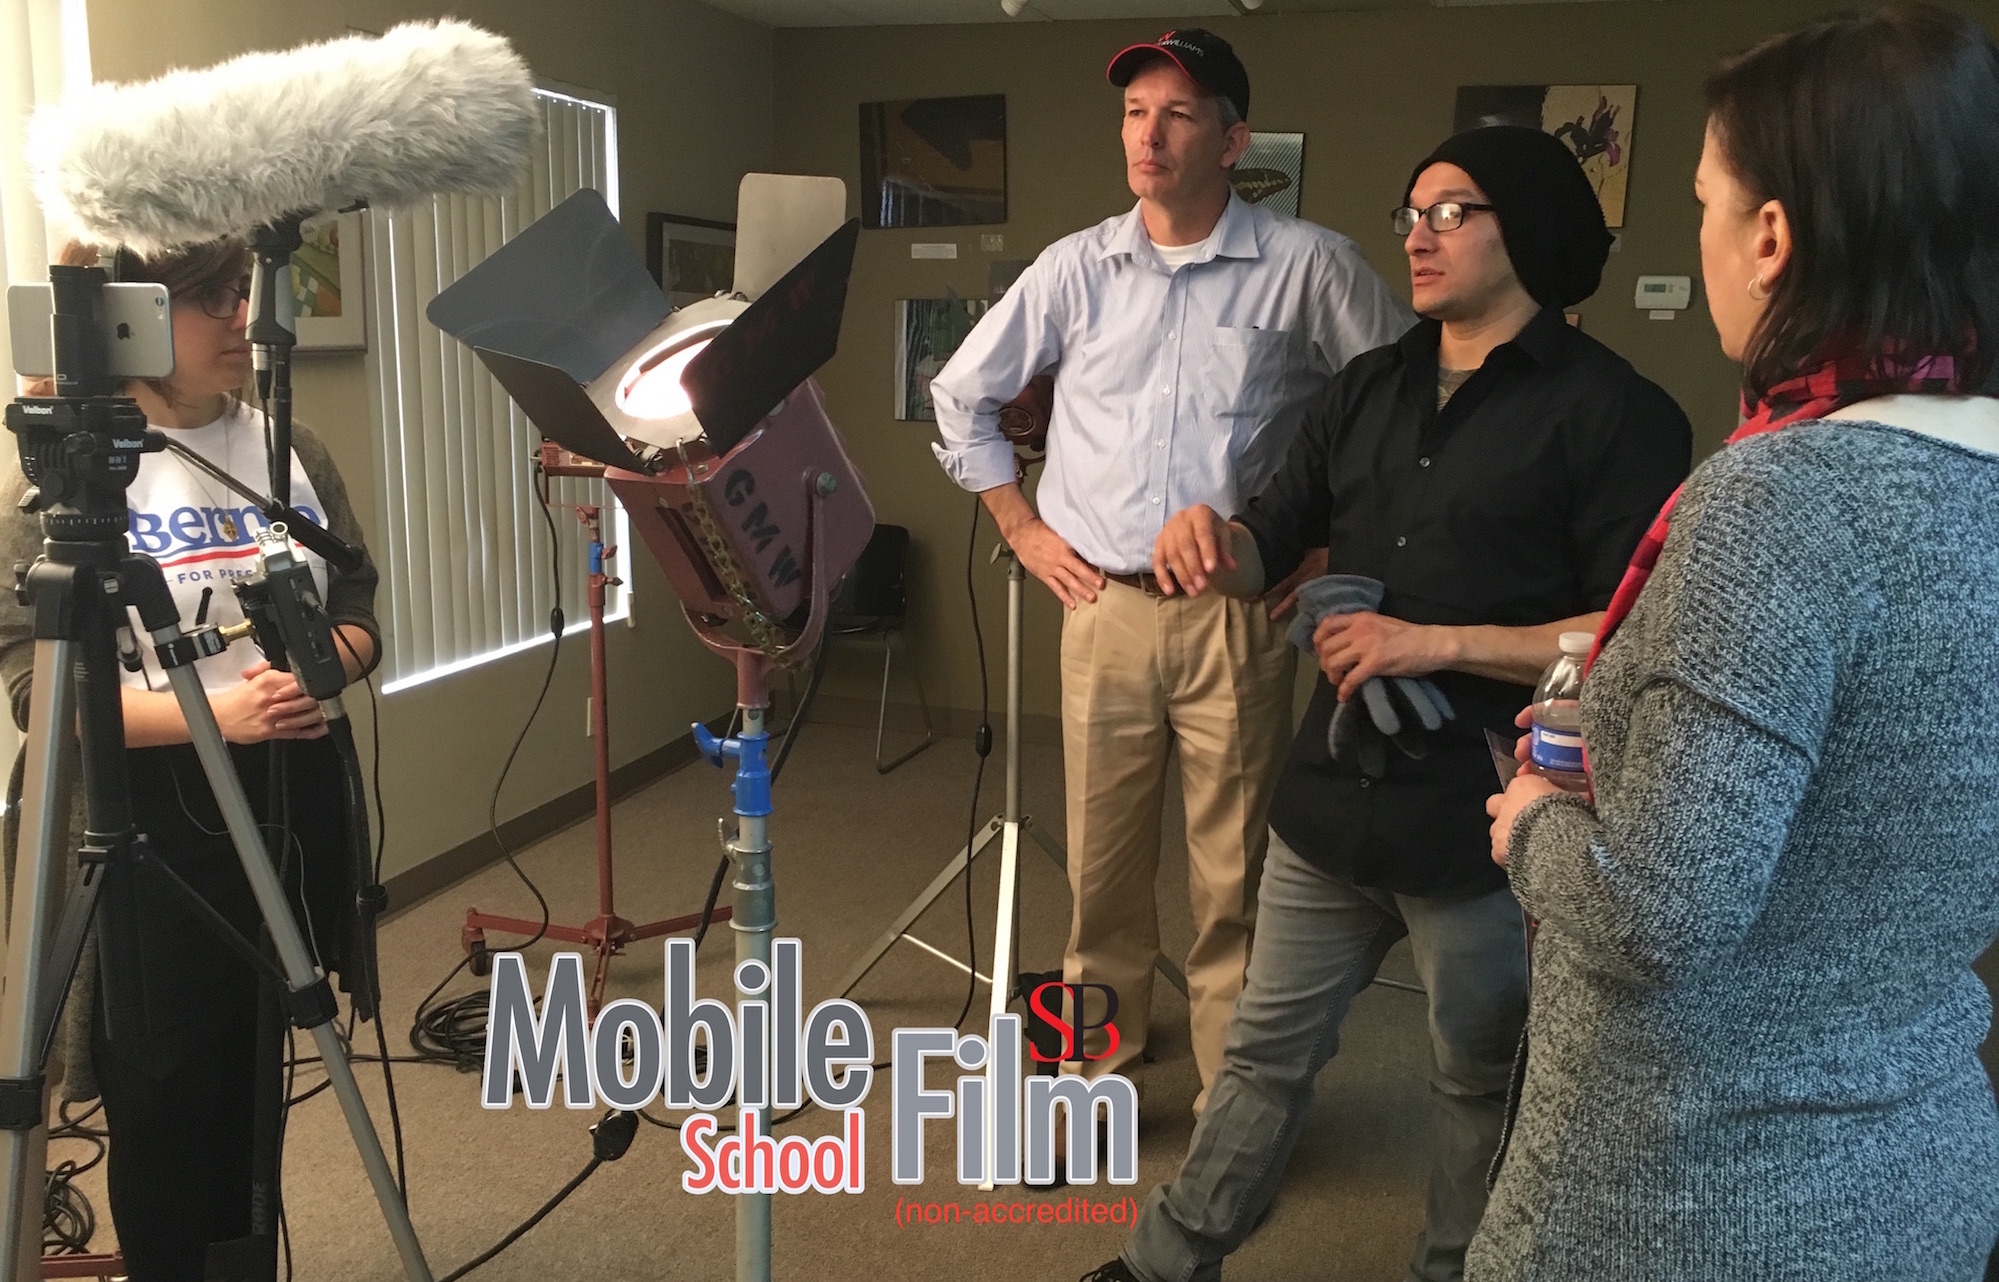 Mobile film school (non-accredited)